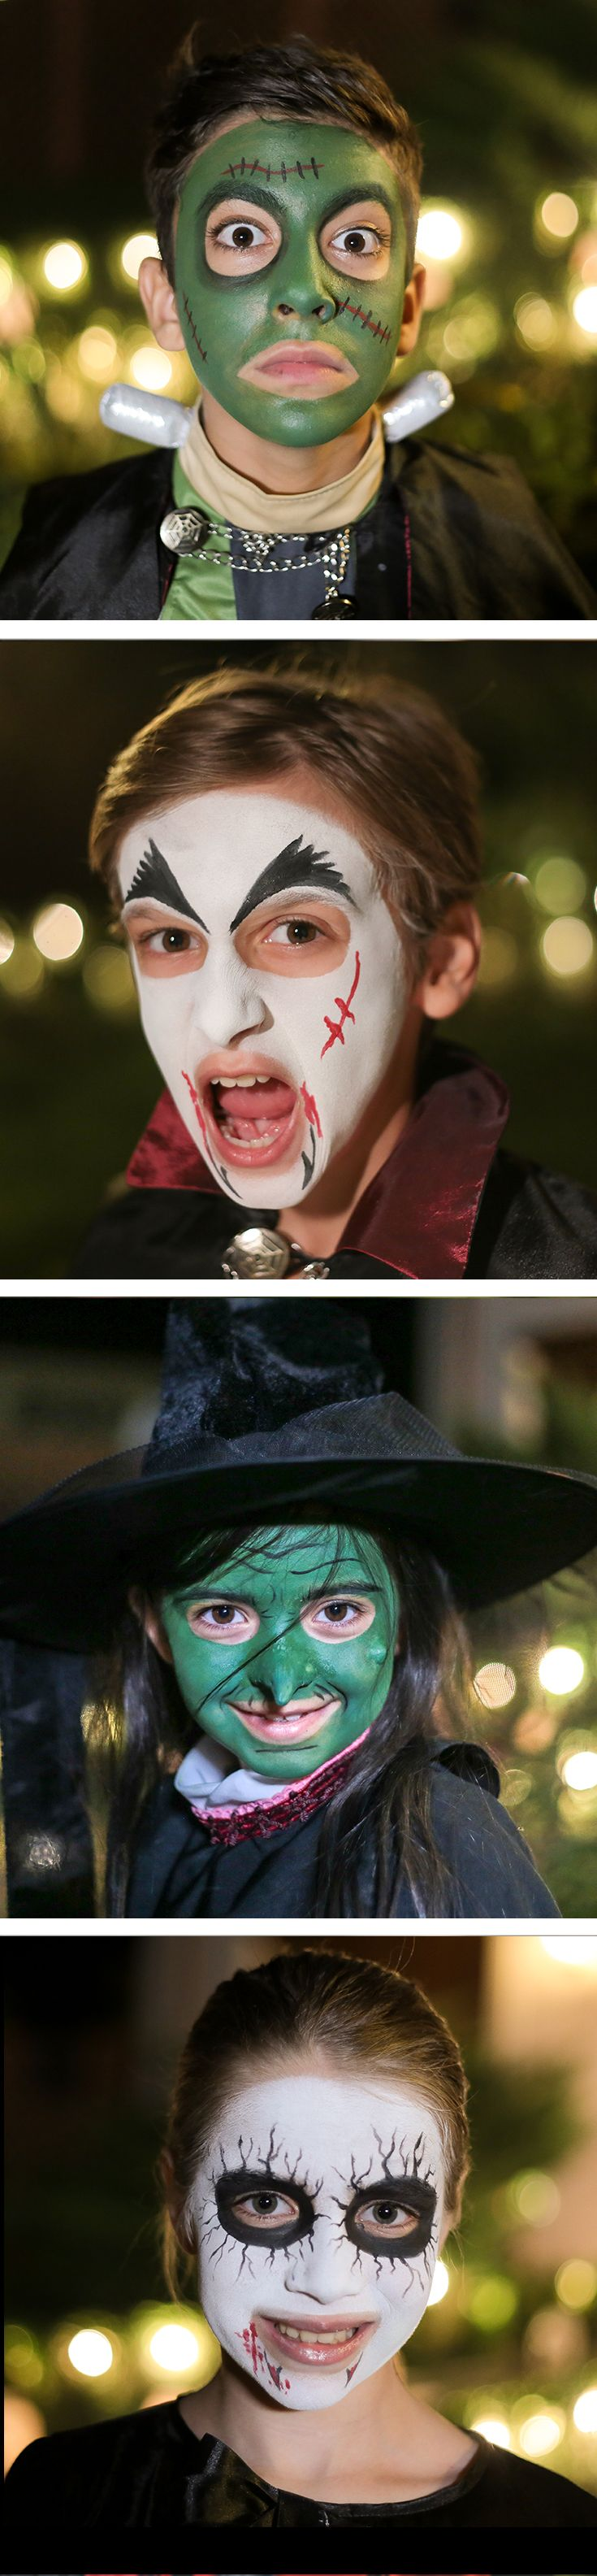 Haunted how-tos. Take a look at our Snazoween guides for eerie inspiration and freaky FacePaint step-by-steps